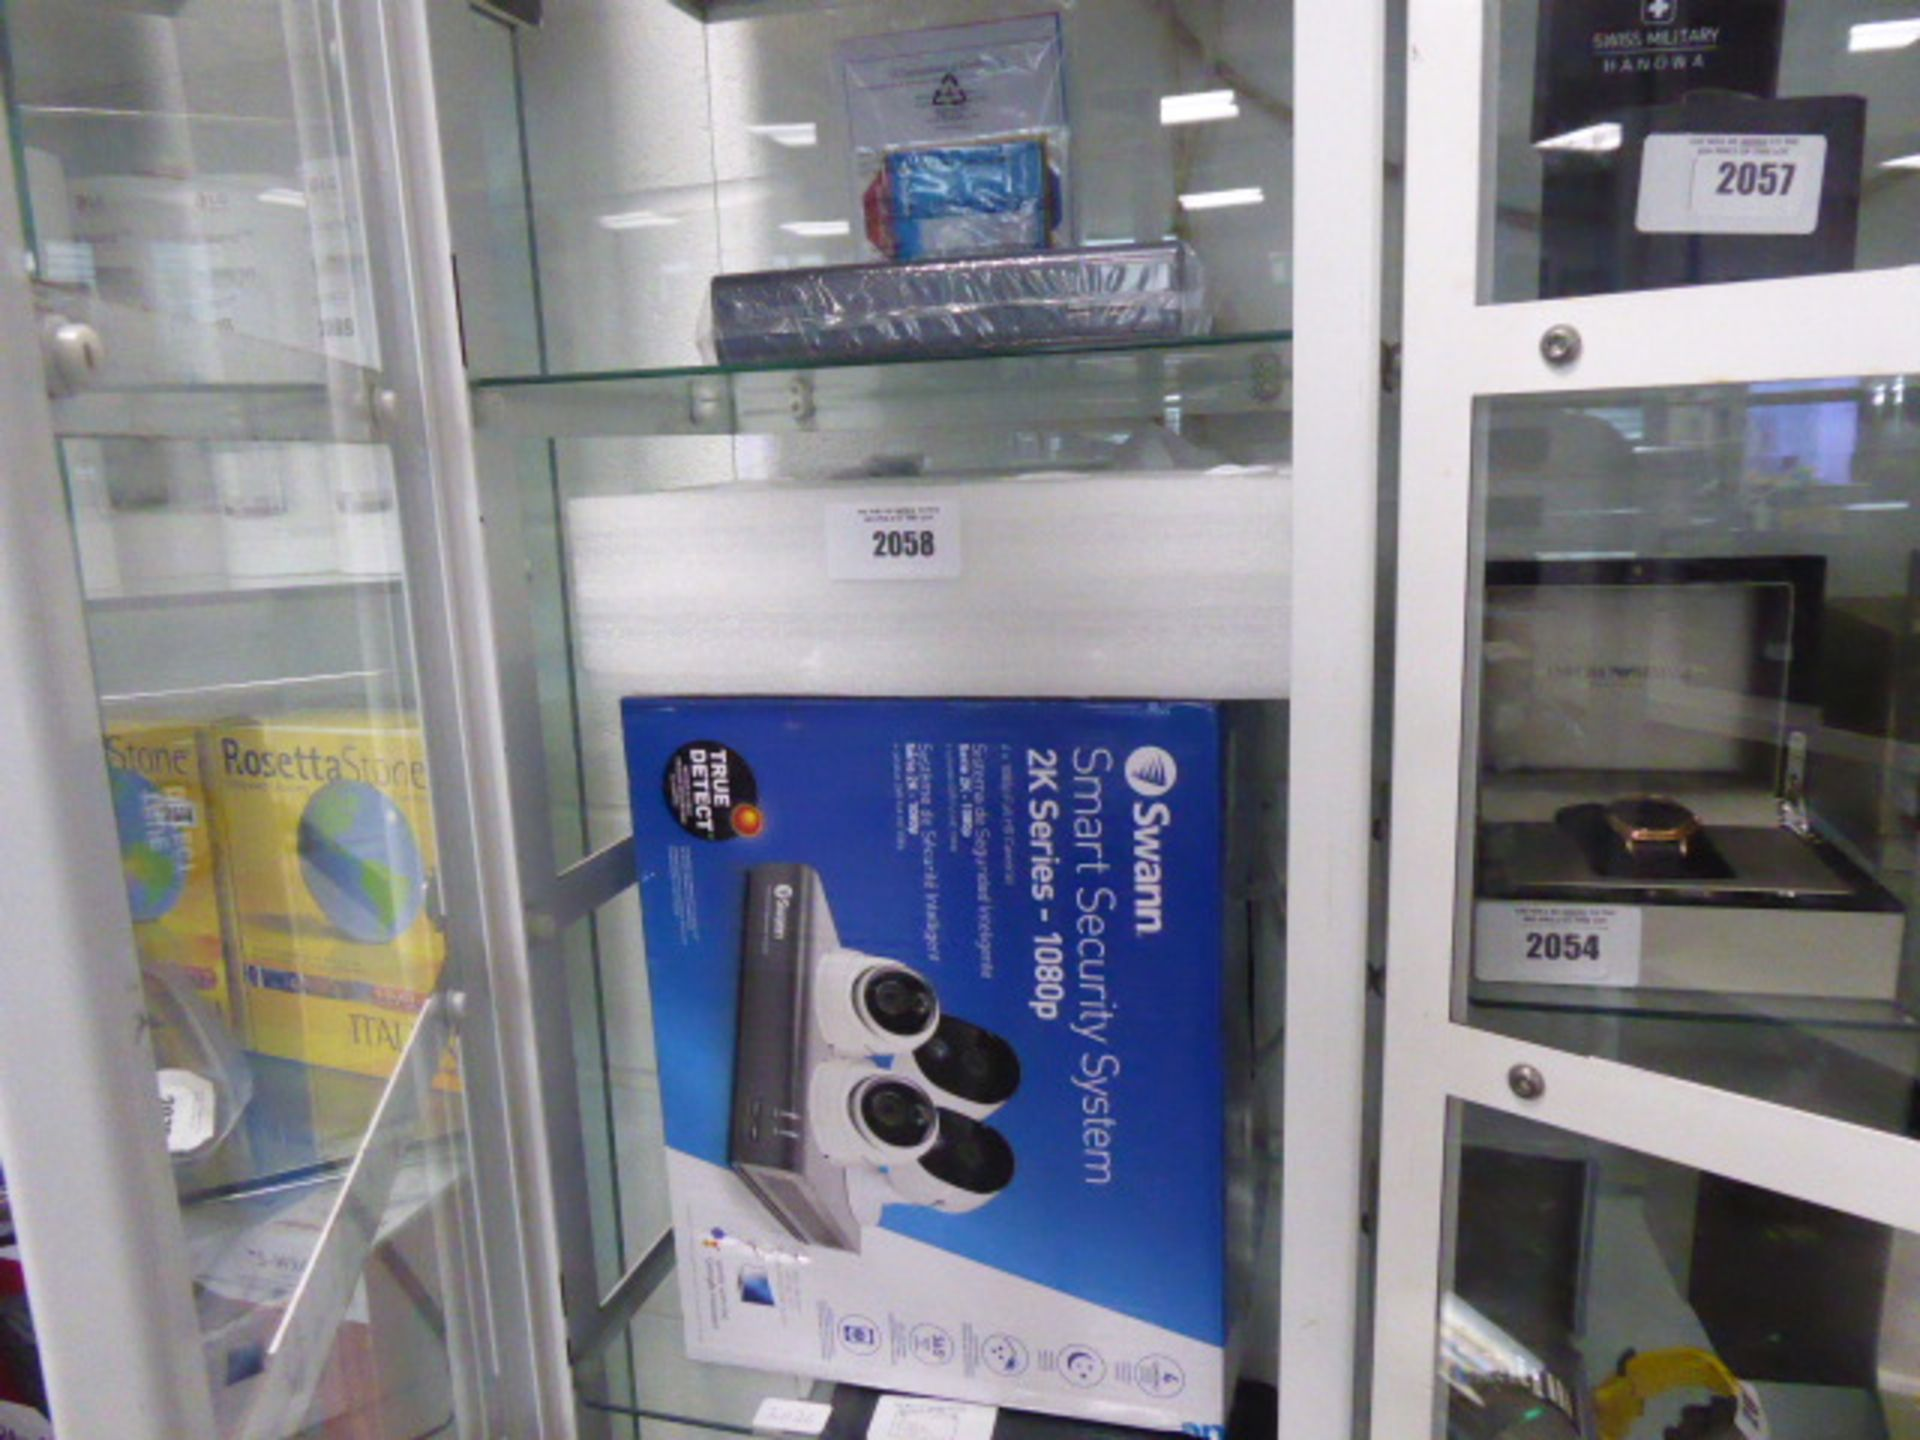 Lot 2058 - Swann Smart security CCTV system 2K series, with 4 cameras, adapters, power supplies and recorder